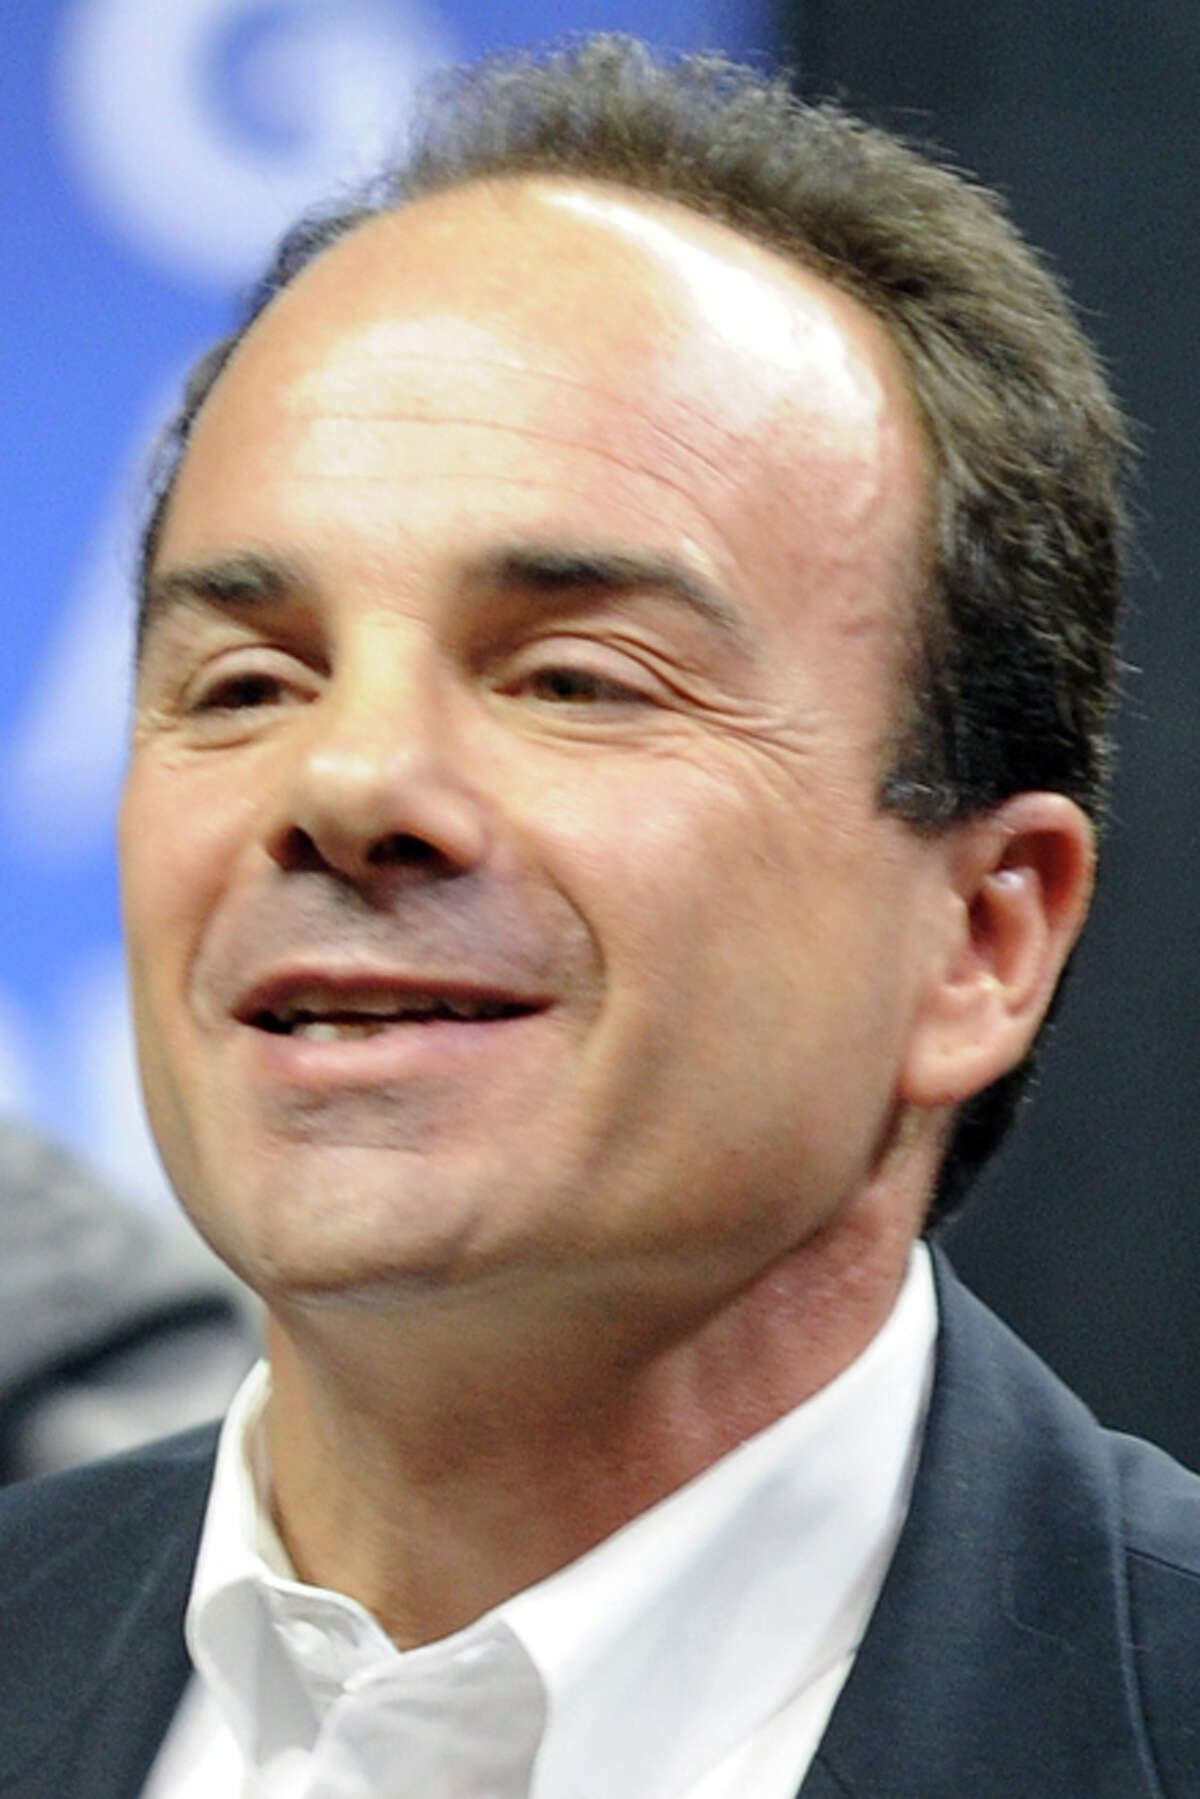 Former Bridgeport Mayor Joe Ganim is part of the crowd waiting for the start of the President Barack Obama rally at the Arena at Harbor Yard in Bridgeport, Conn. Saturday, Oct. 30th, 2010.